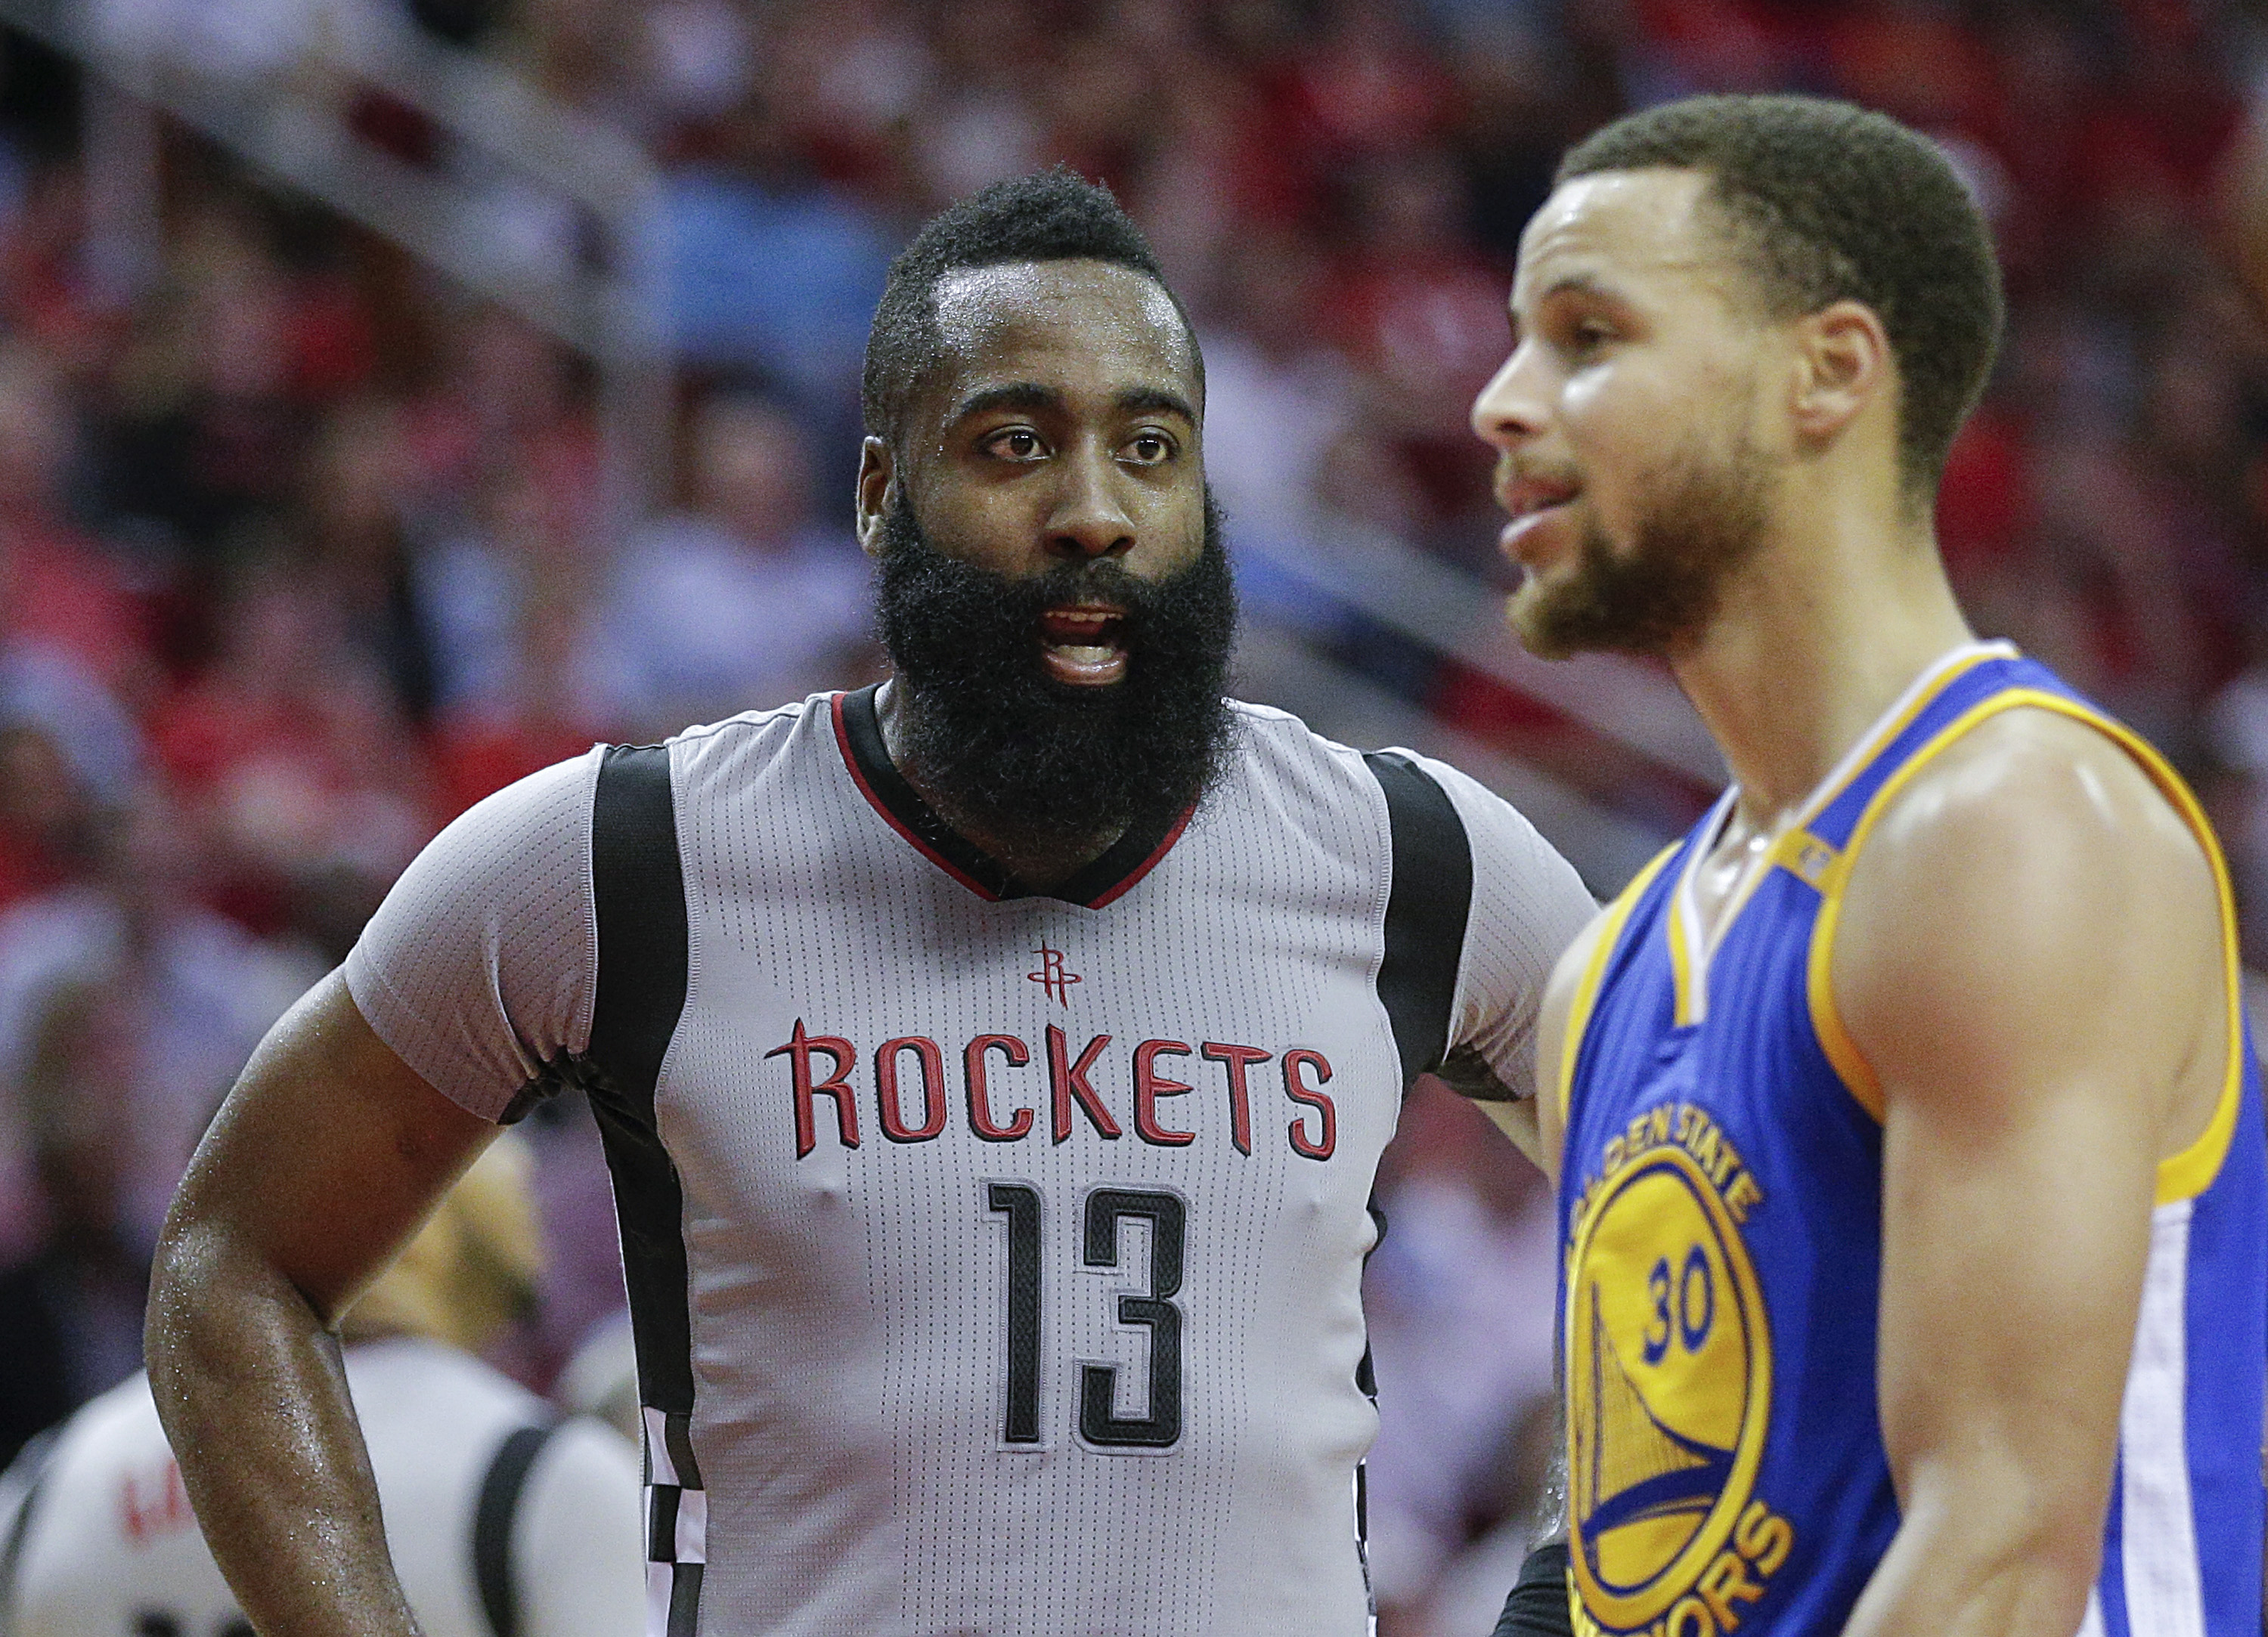 Mar 28, 2017; Houston, TX, USA; Houston Rockets guard James Harden (13) and Golden State Warriors guard Stephen Curry (30) exchange words in the second half at Toyota Center. Mandatory Credit: Golden State Warriors won 113-106. Thomas B. Shea-USA TODAY Sports